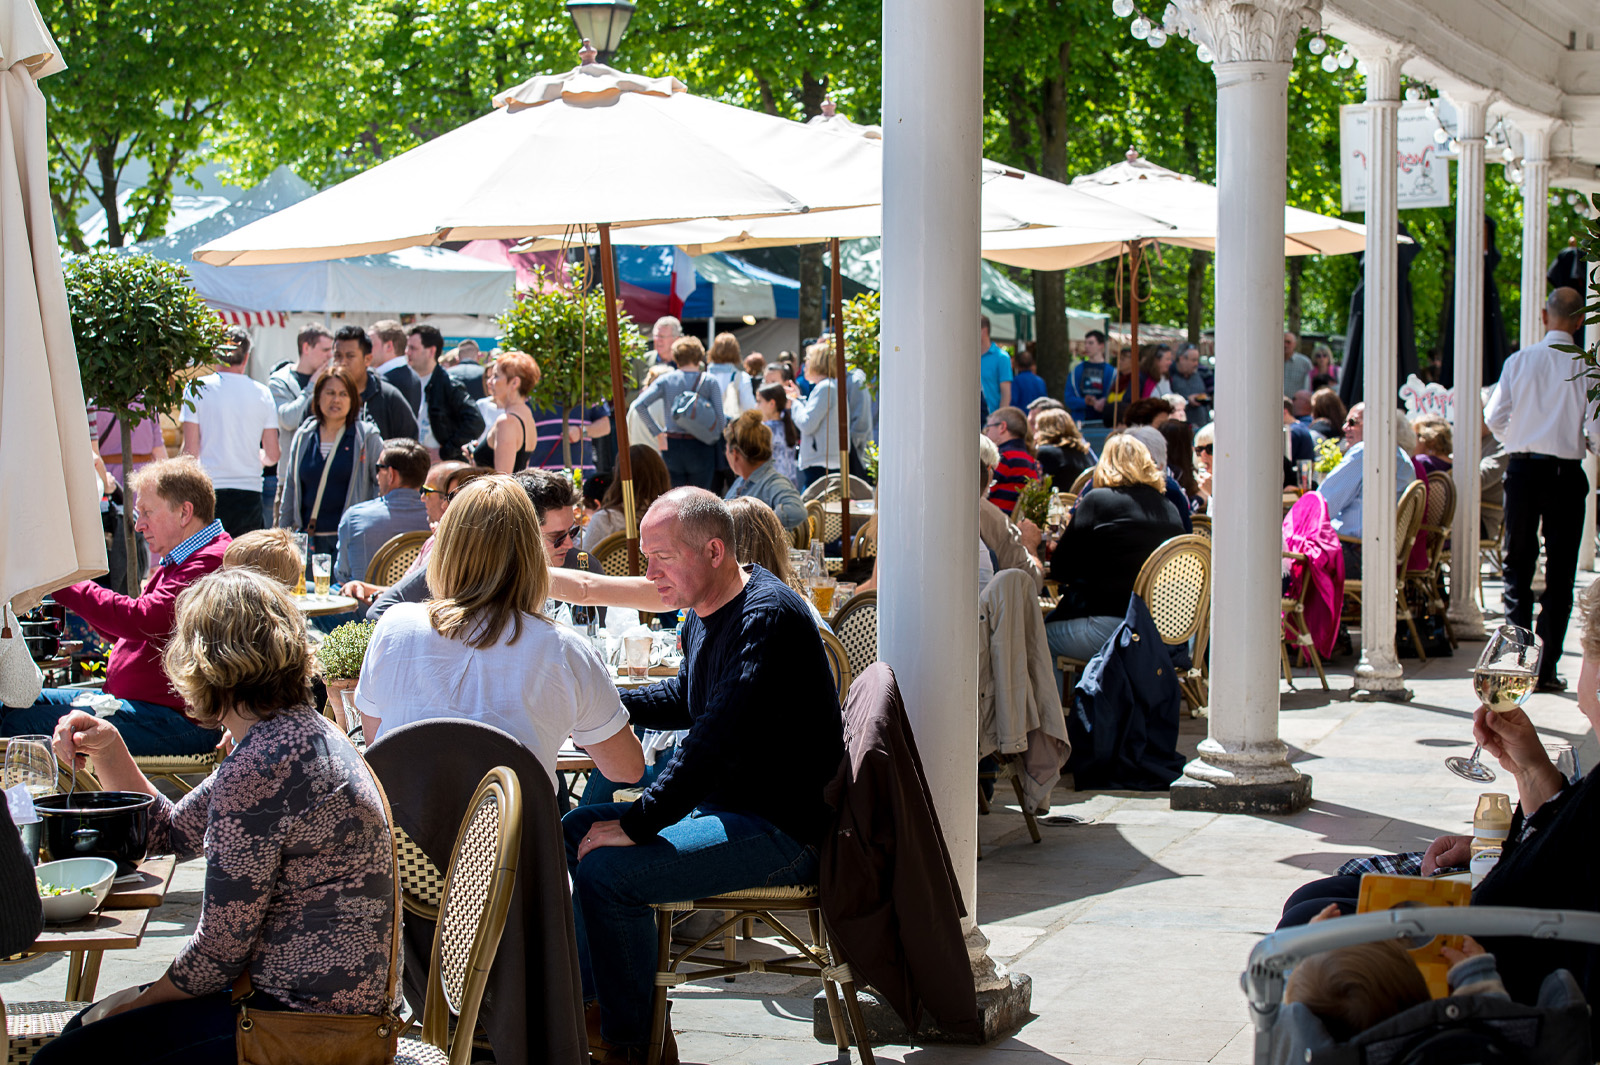 Eating al fresco in The Pantiles is glorious - photo by David Hodgkinson